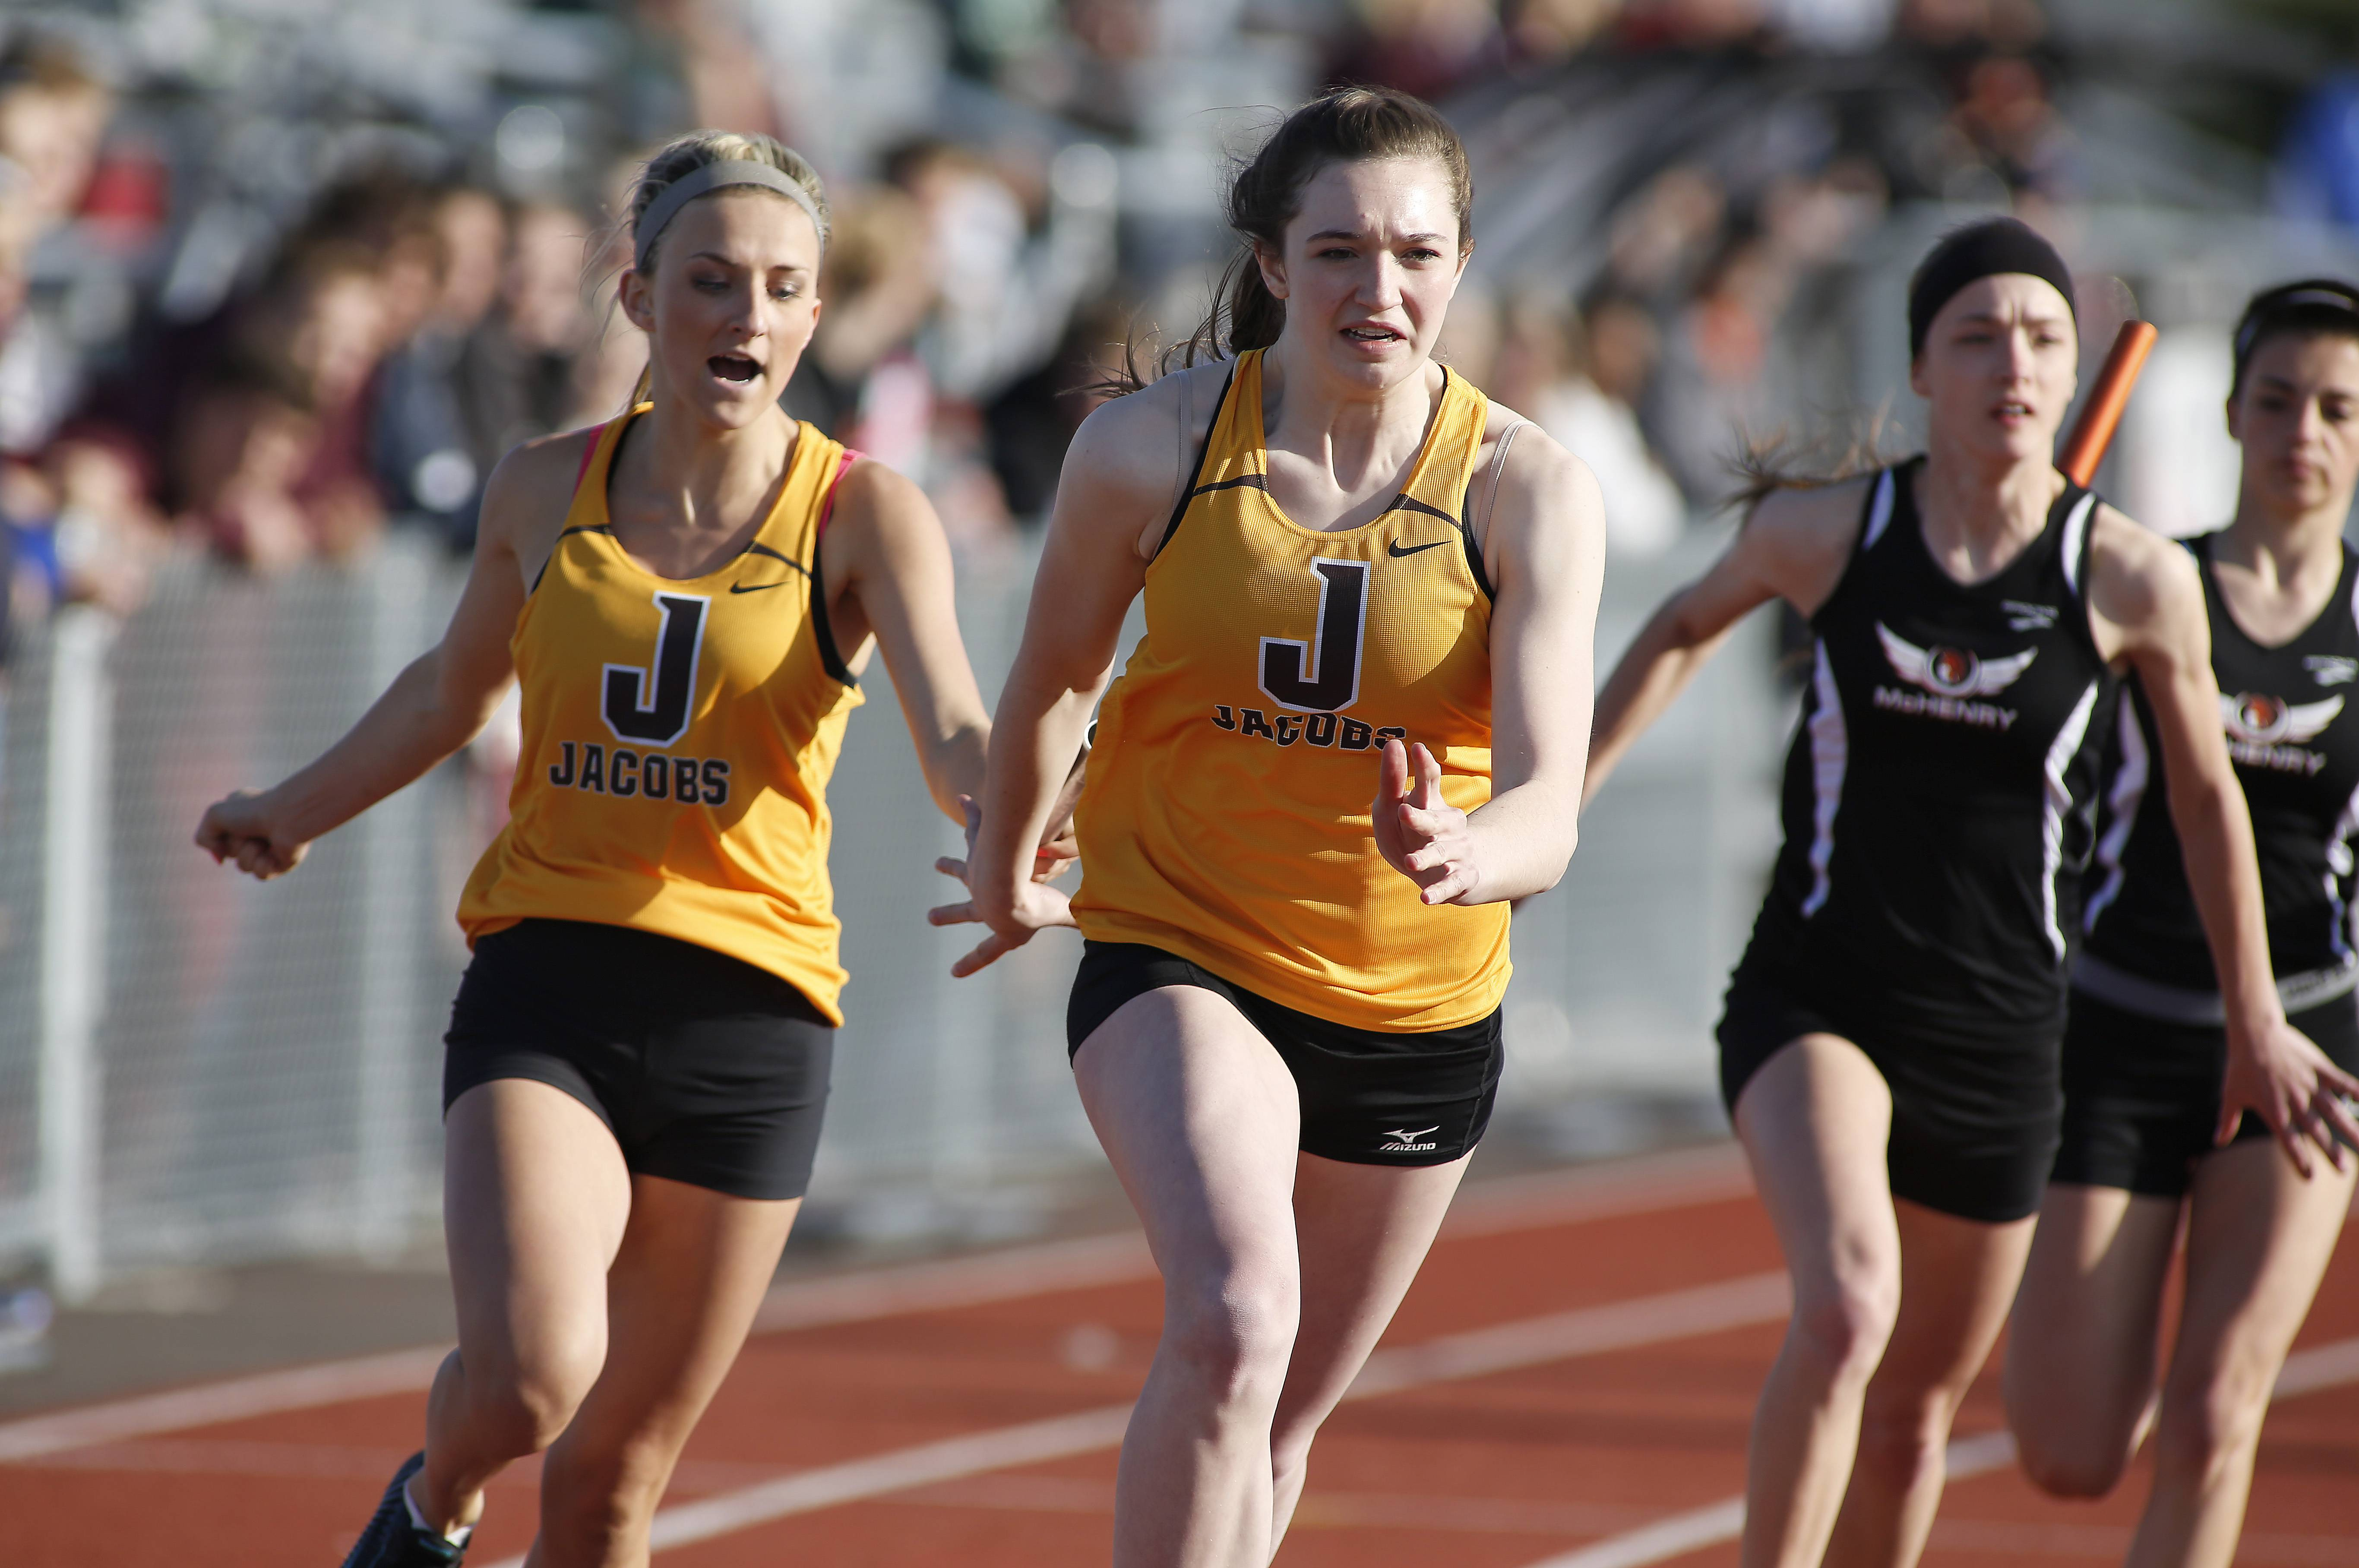 Jacob's Lexi Post, left, and Rachael Holstein hand off the baton in the 4x100 relay during the McHenry County Track and Field Championships last Friday in Huntley.